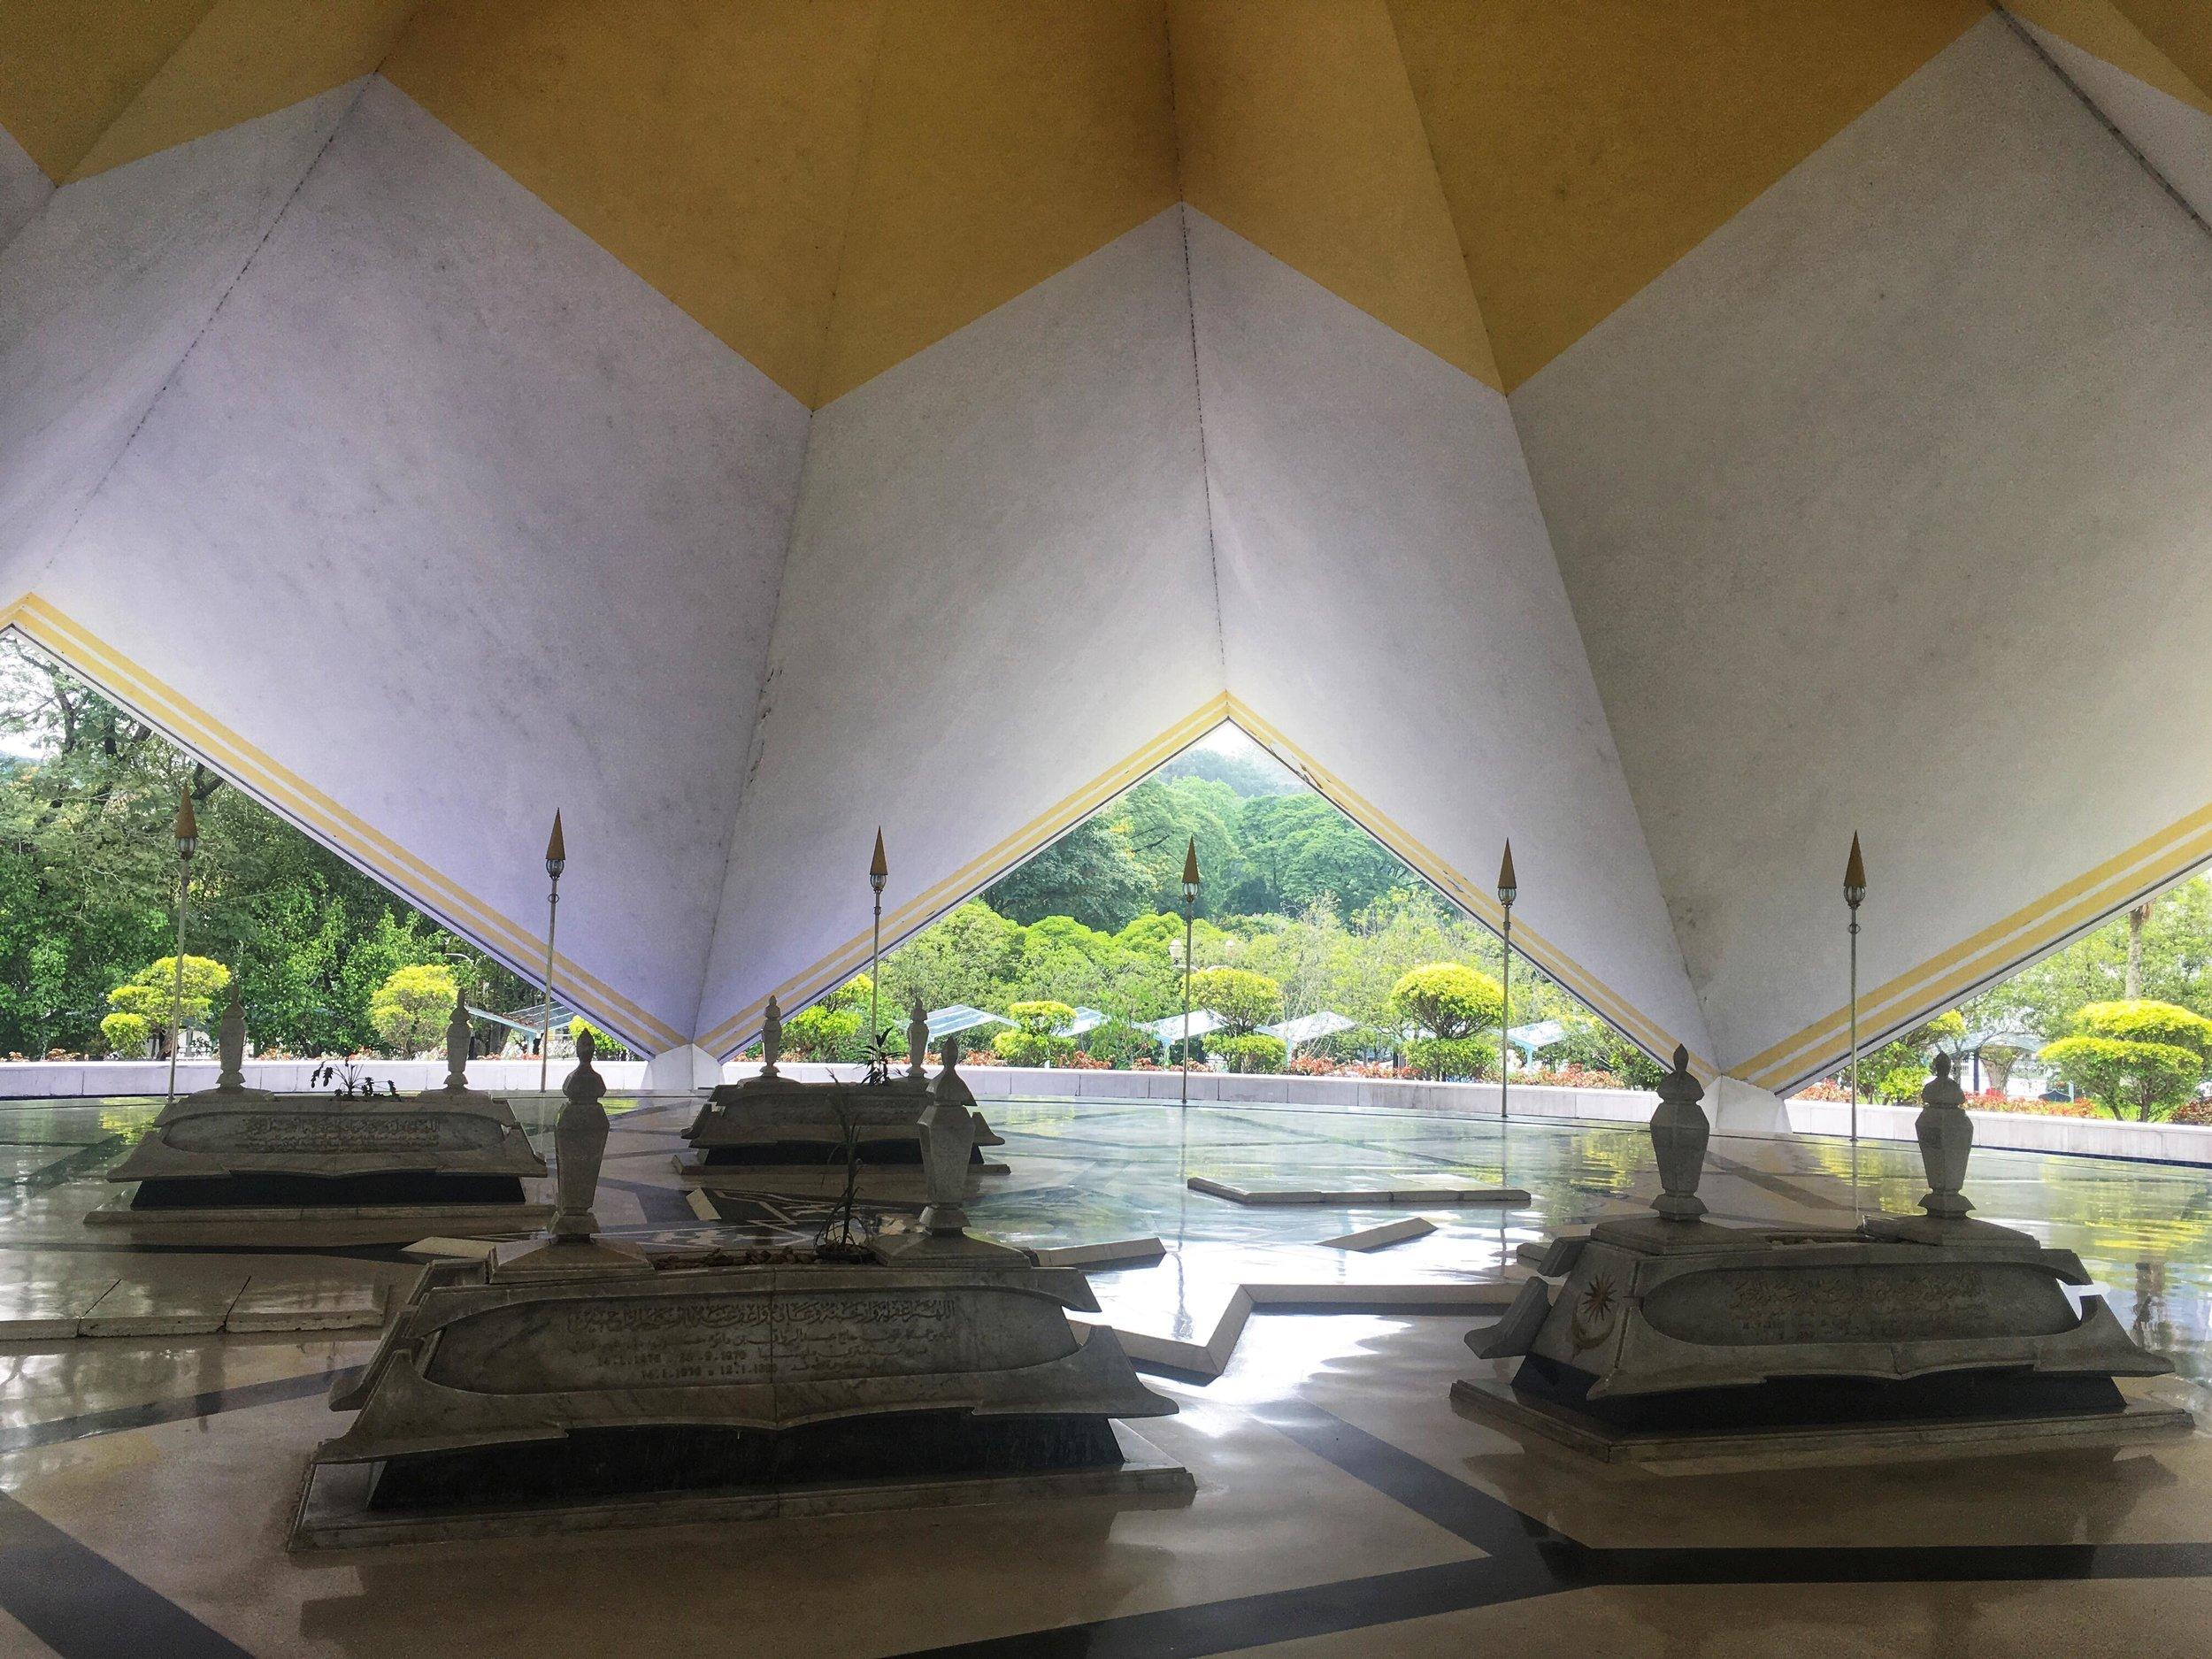 Makam Pahlawan, the Hero's Mausoleum of Malaysia at the National Mosque